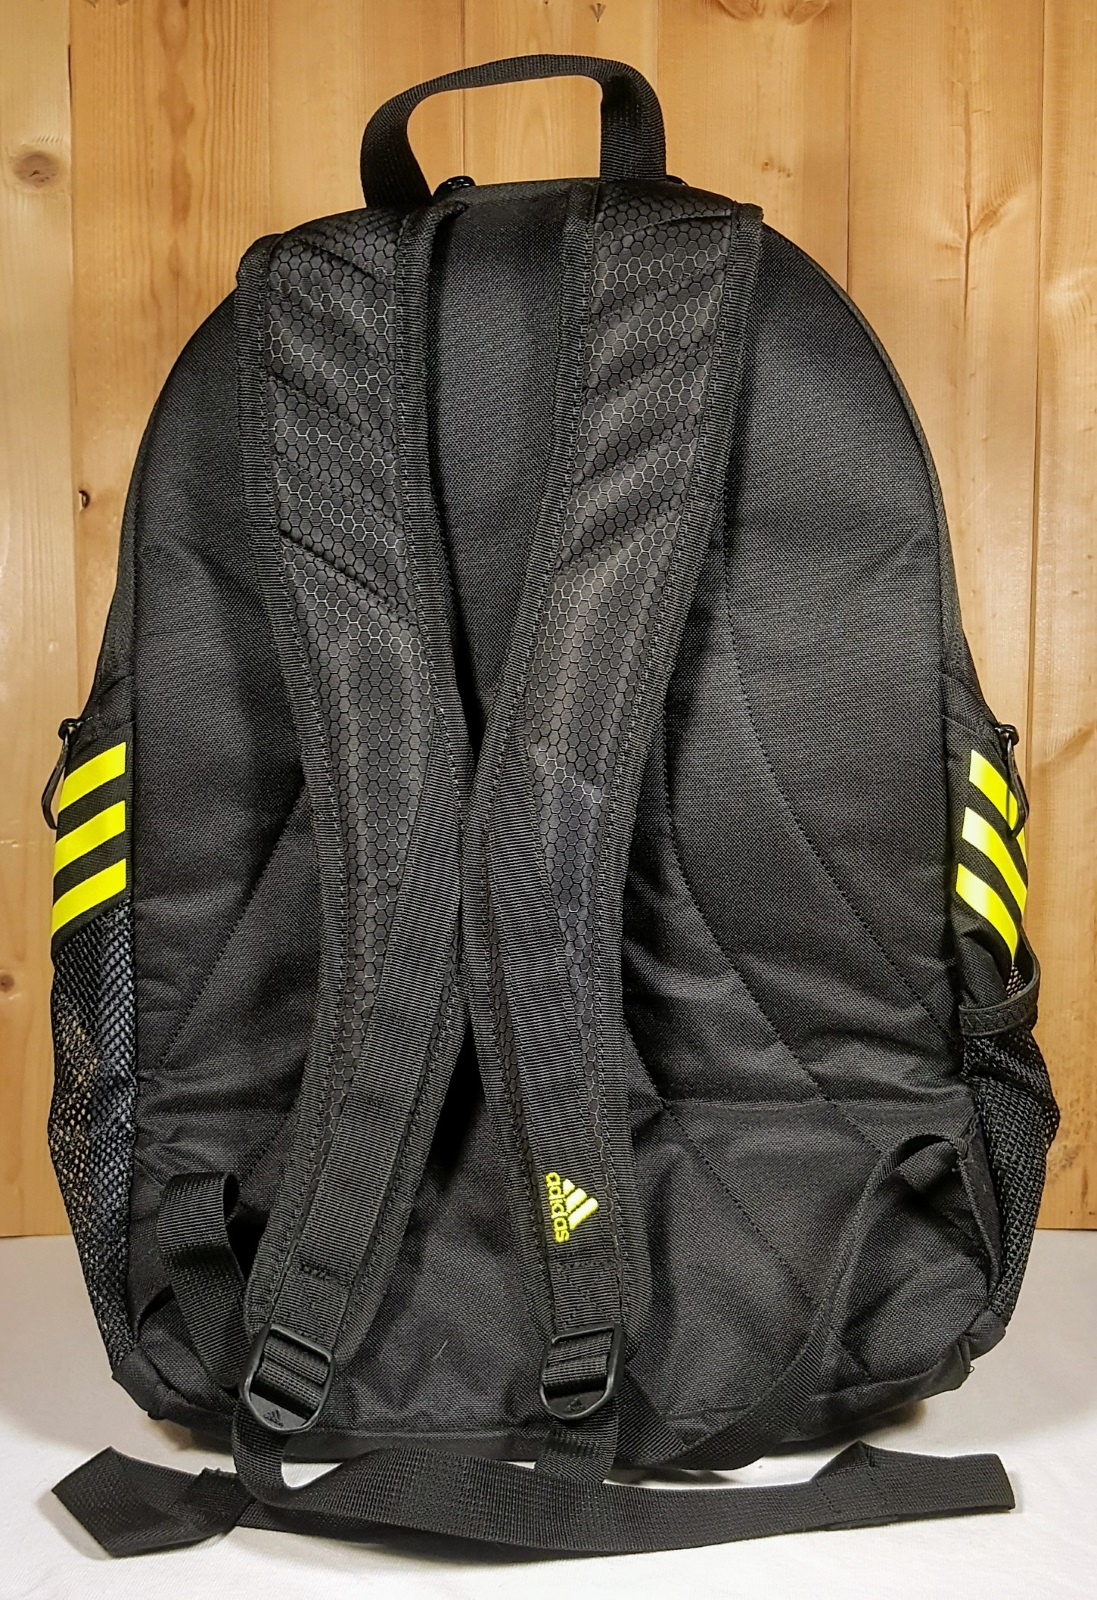 09c122407842 Adidas Soccer Estadio Team Backpack IV Black w  Navy and Yellow ...